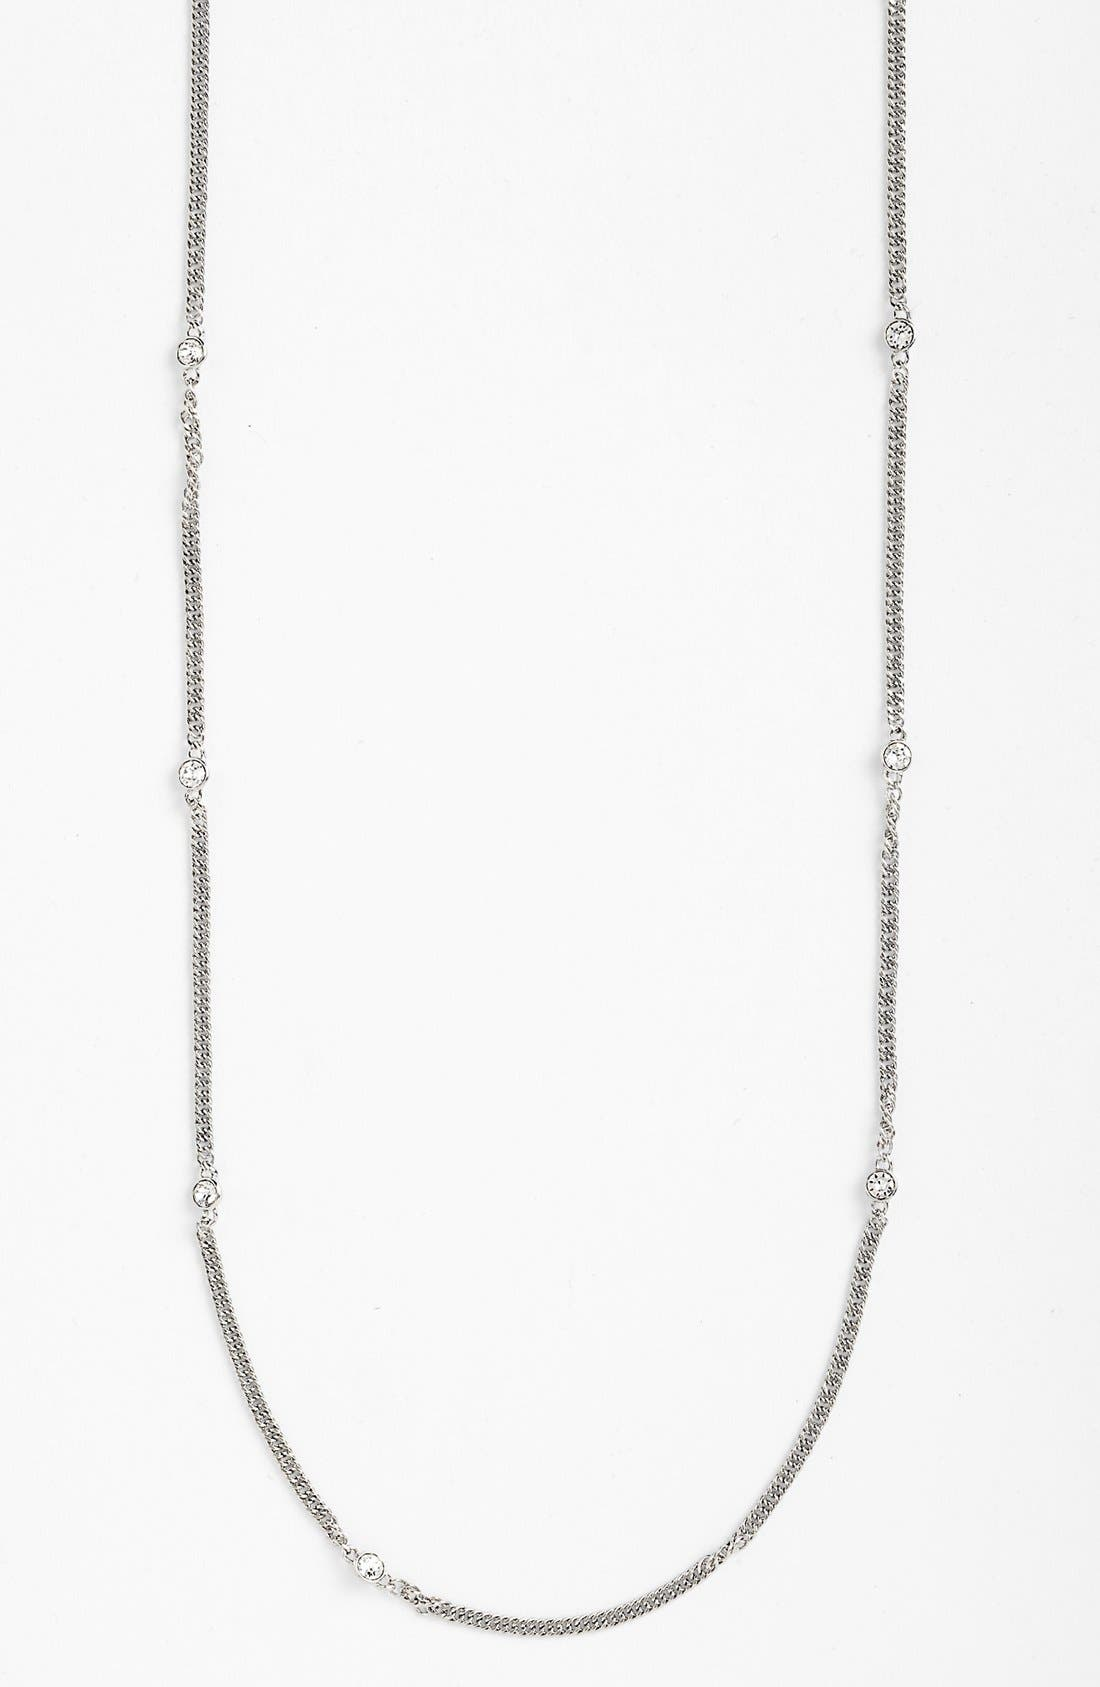 Main Image - Givenchy Extra Long Station Necklace